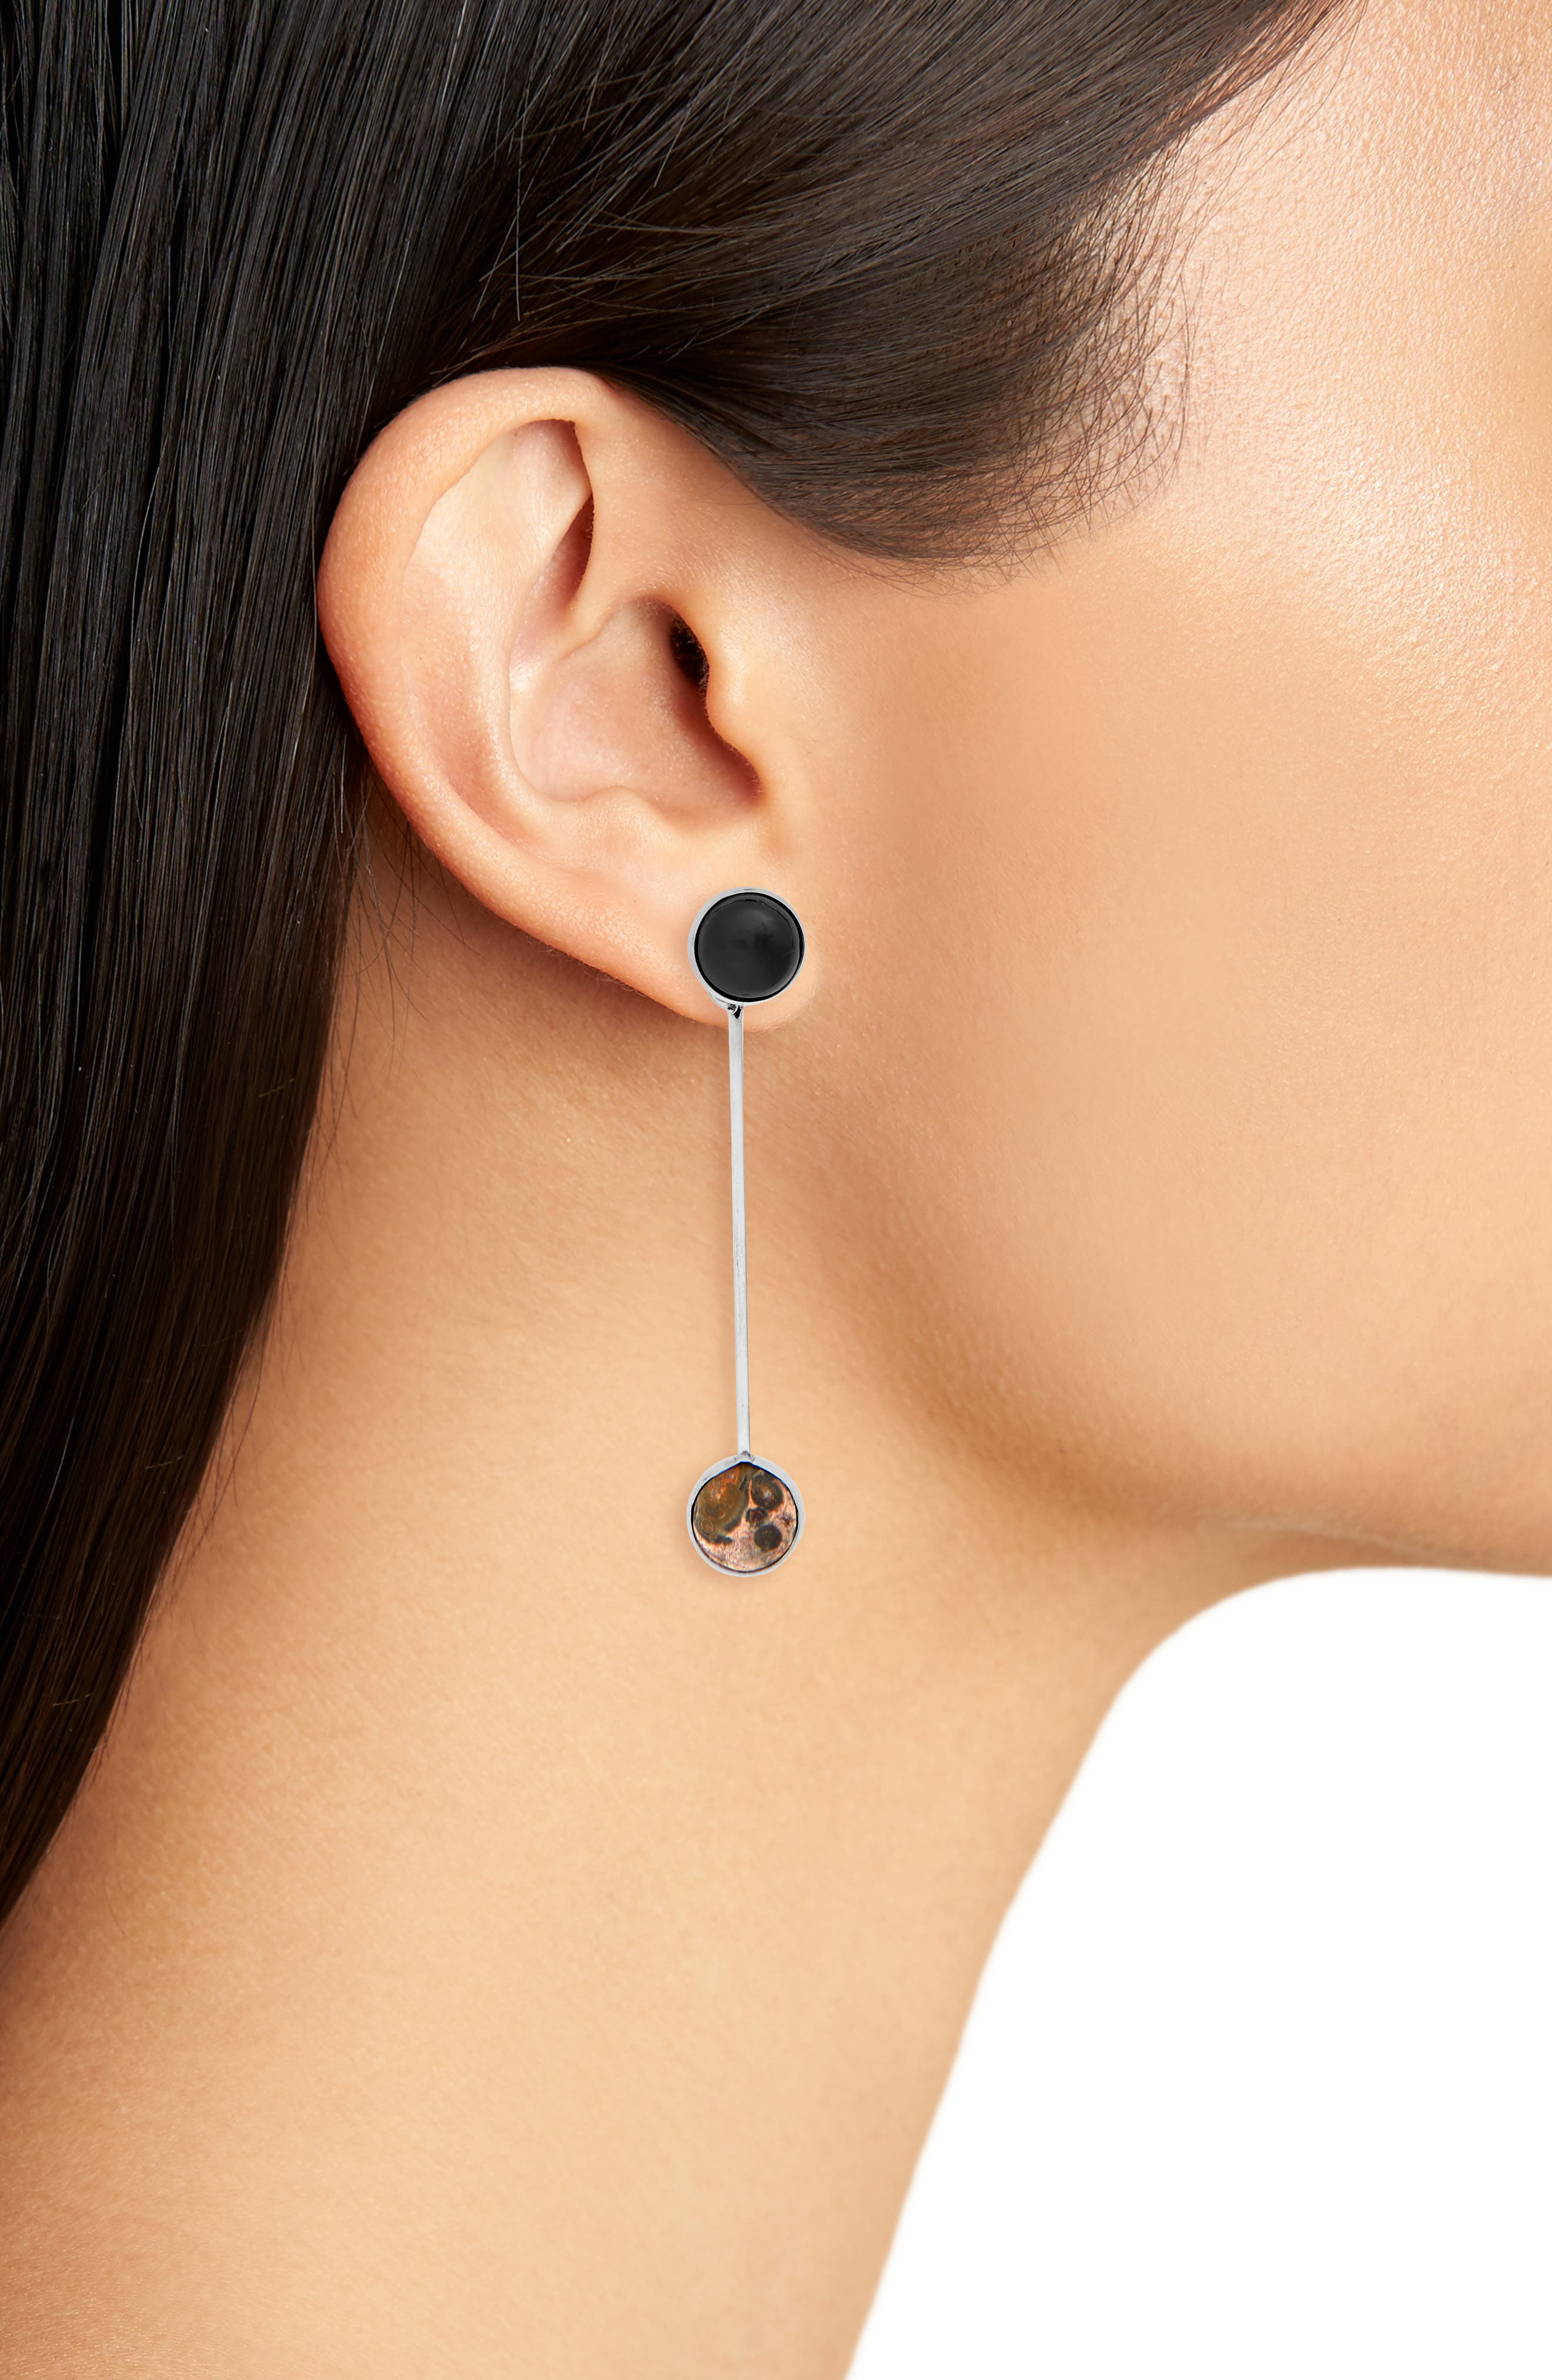 Sway Earring,                             Alternate thumbnail 2, color,                             ONYX/ LEOPARD